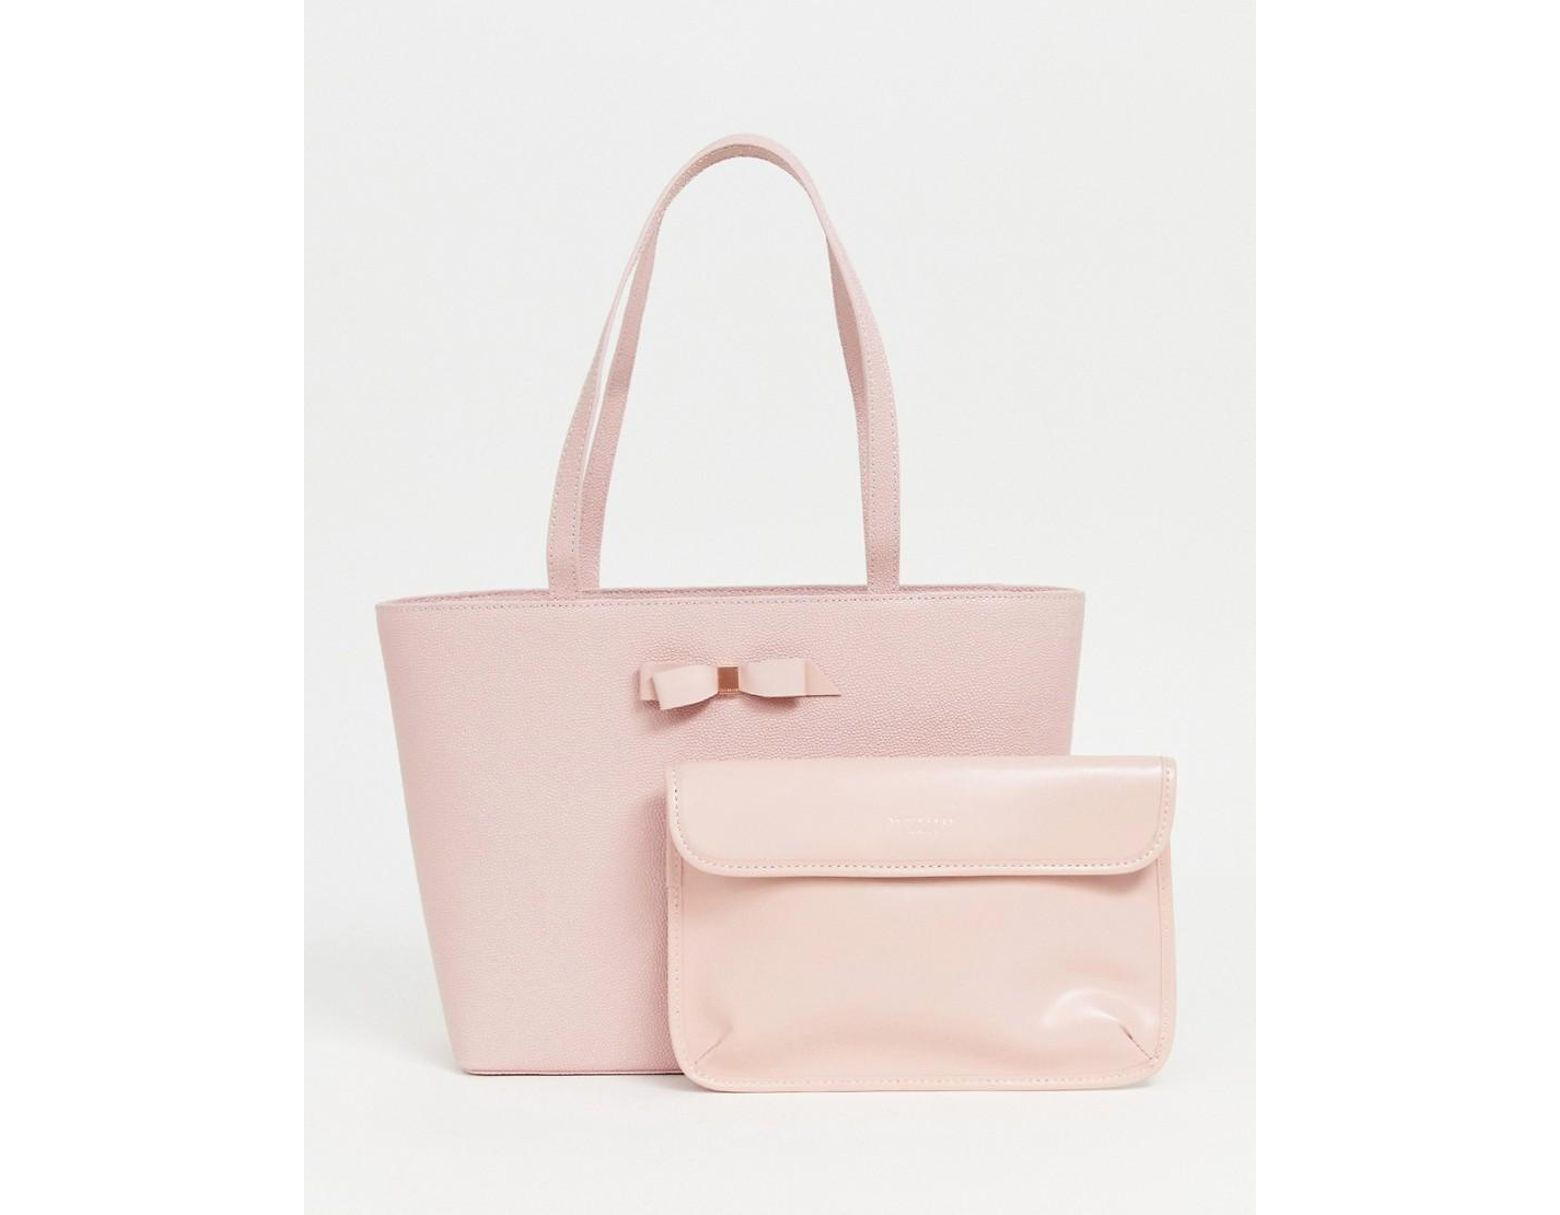 68a6e0729c Ted Baker Jessica Bow Shopper Bag in Pink - Lyst